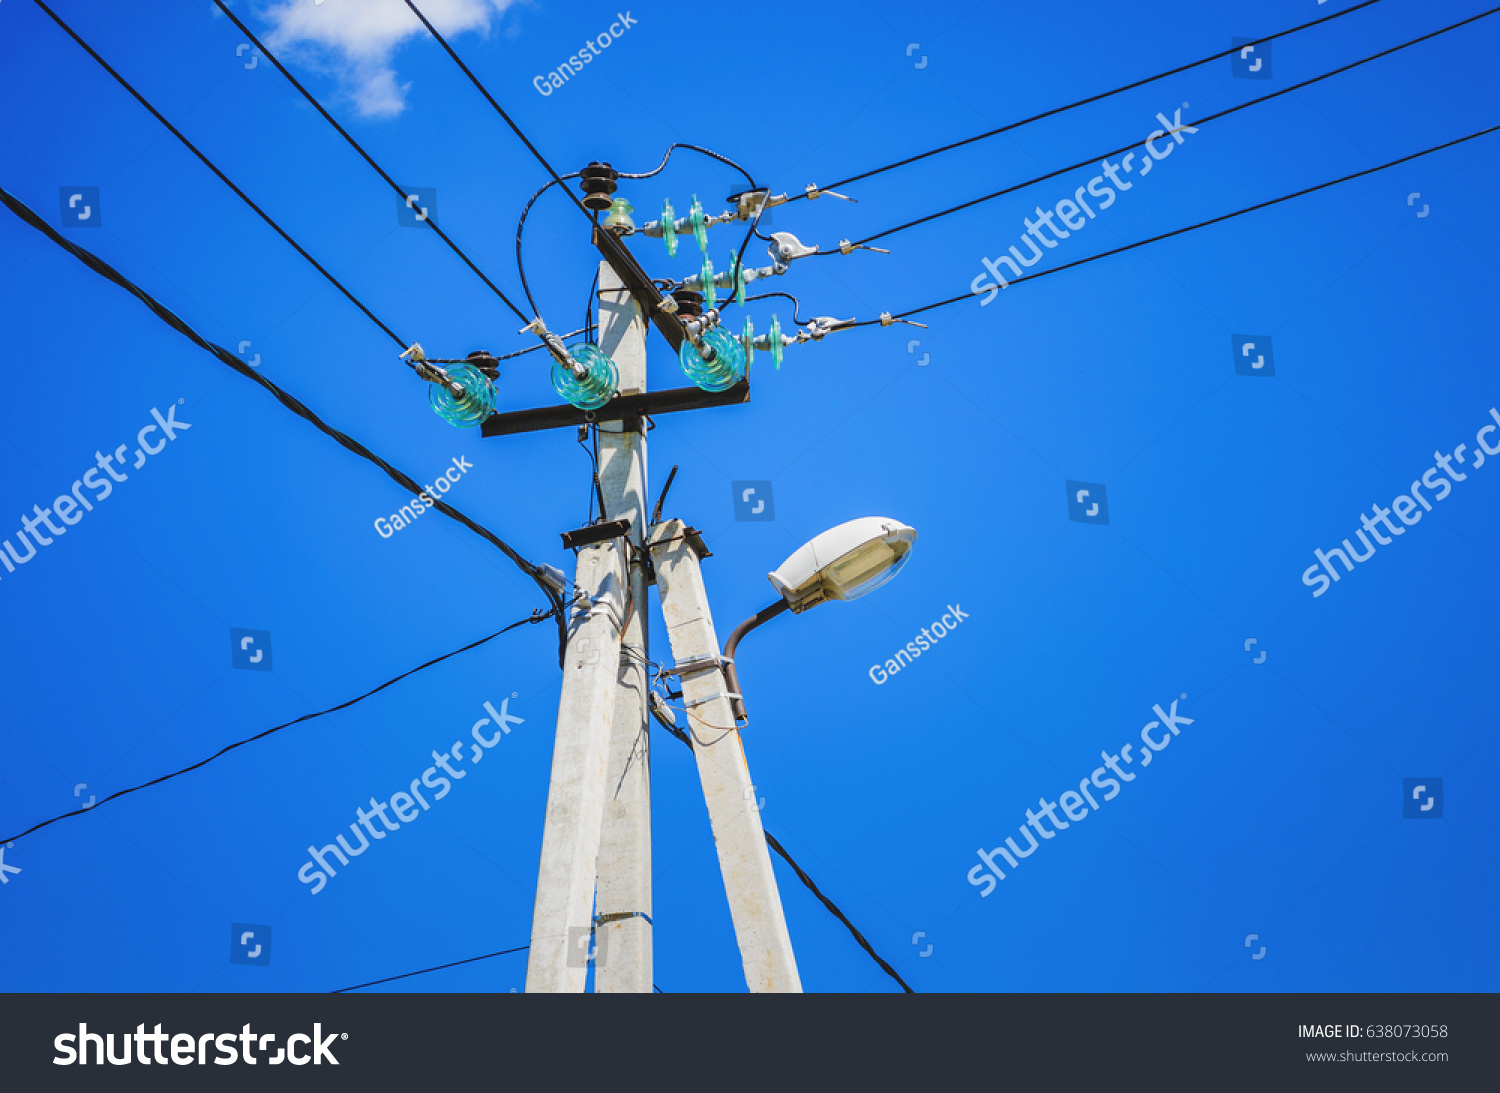 Tangle Of Electrical Wires On Power Pole Overhead Lines